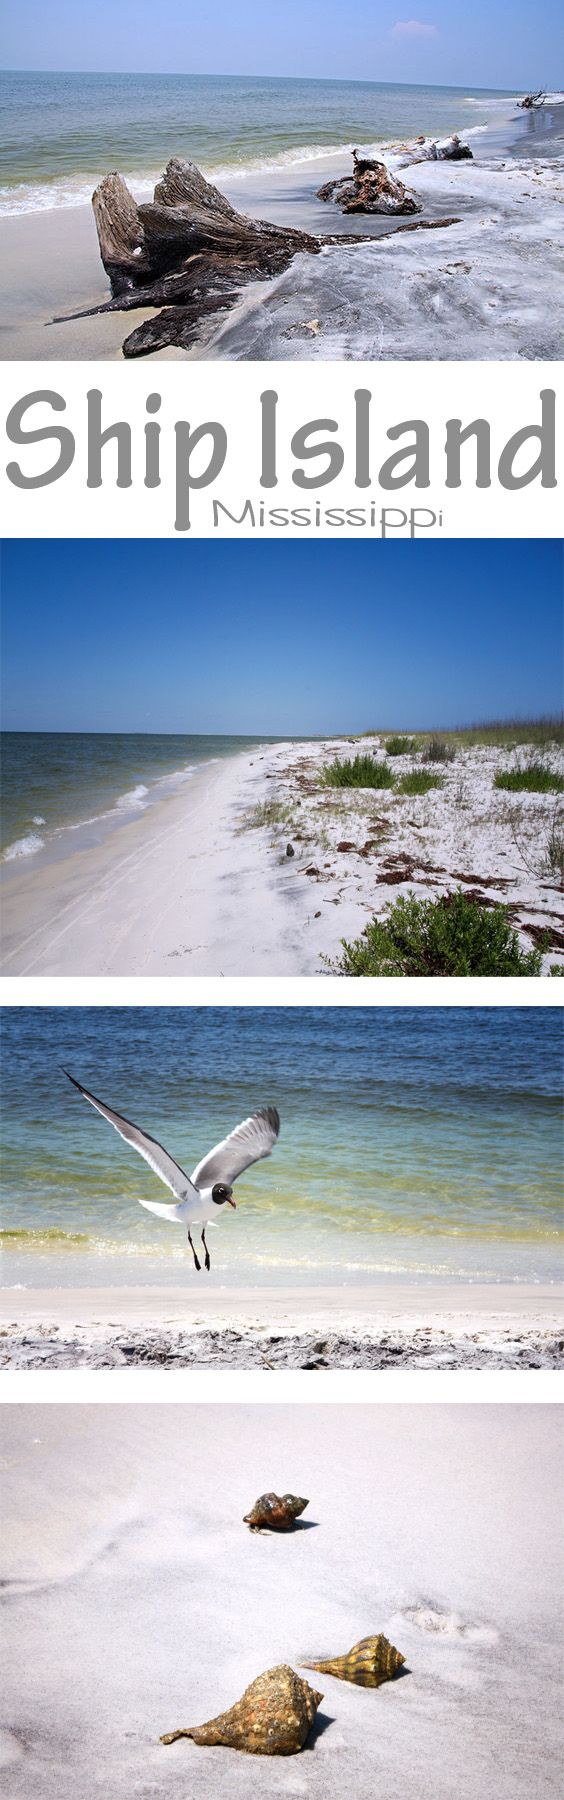 A beautiful Island in Mississippi - Ship Island - Gulf Coast -Gulfport